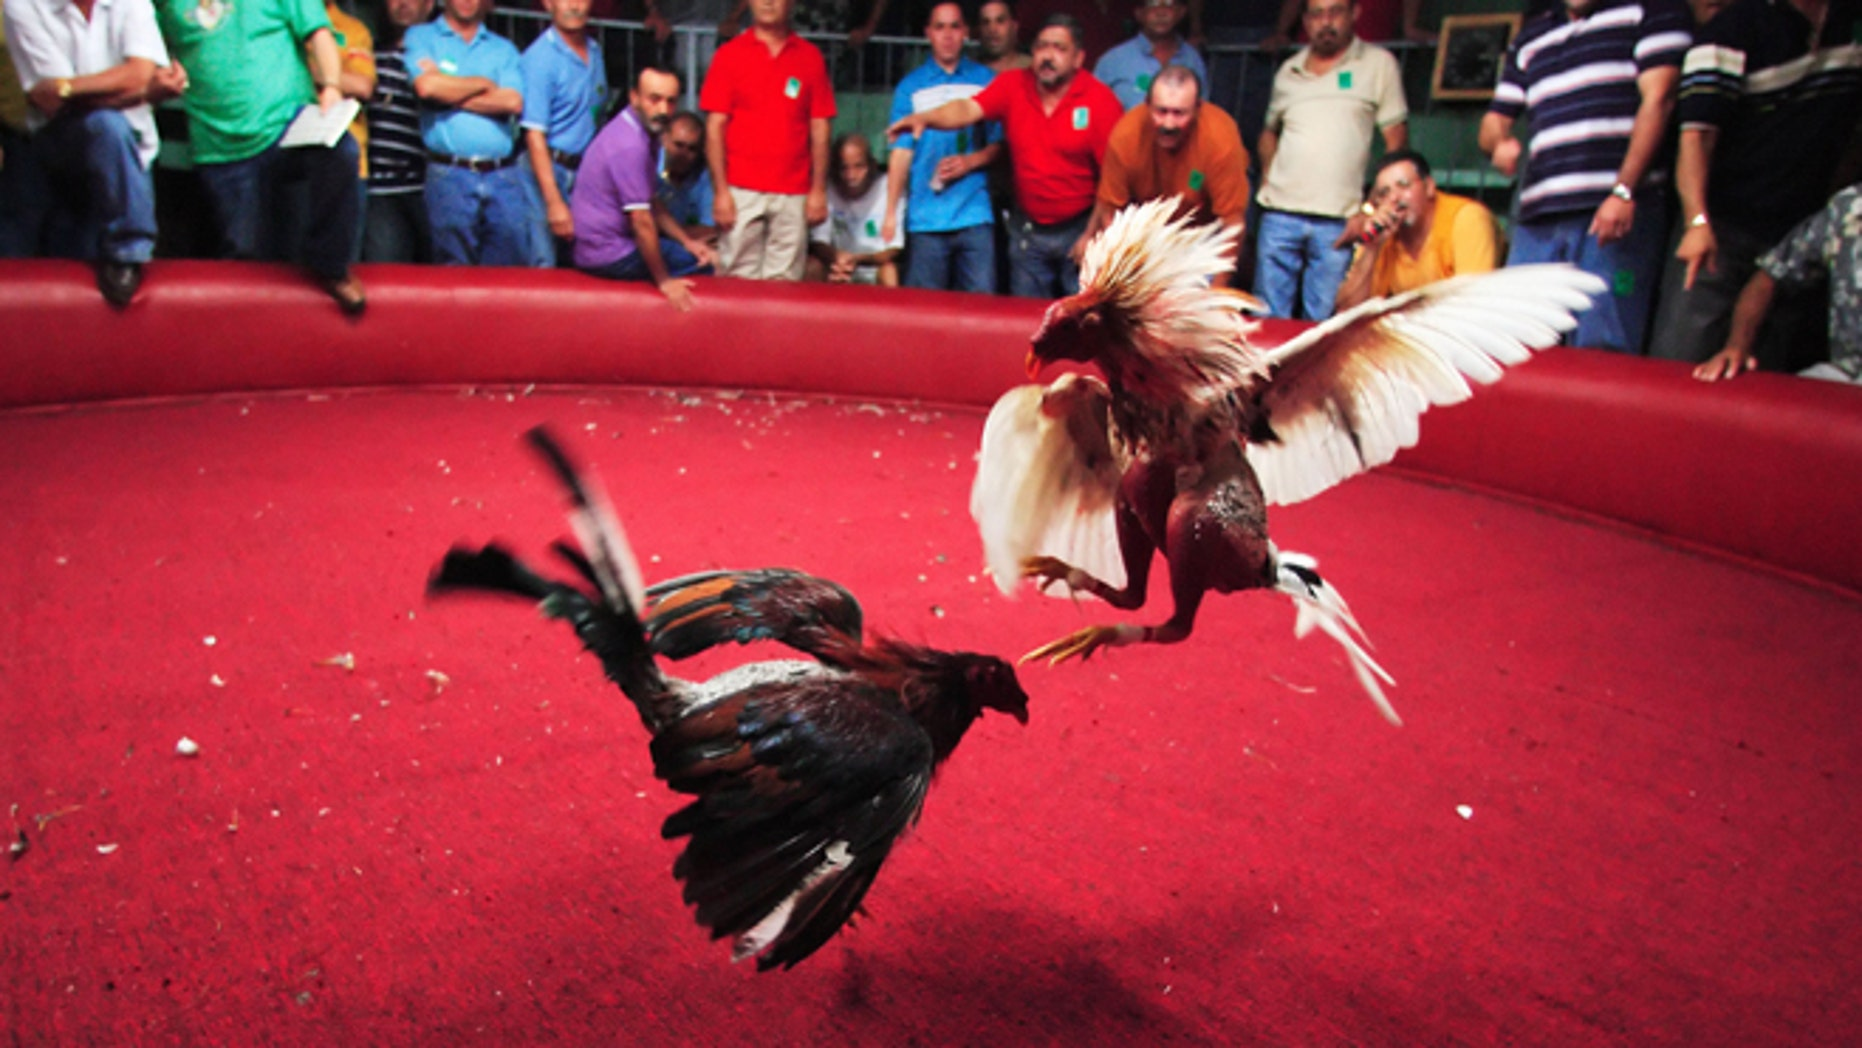 """BARRANQUITAS, PUERTO RICO - NOVEMBER 11, 2006: Spectators cheer on the Fighting Roosters  on opening night of the Cockfighting season at the Coliseo Central De Barranquitas on November 11, 2006 in Barranquitas, Puerto Rico.  Heavy betting between the fans are made before and during the fights.  Most of the time multiple bets are made by one person of up to several thousand dollars. all bets are paid off in cash at the end of each fight.  Cockfighting, or """"peleas de gallos,"""" is a legal sport in Puerto Rico, unlike in the United States where some states have made it a felony.  (Photo by Al Bello/Getty Images)"""